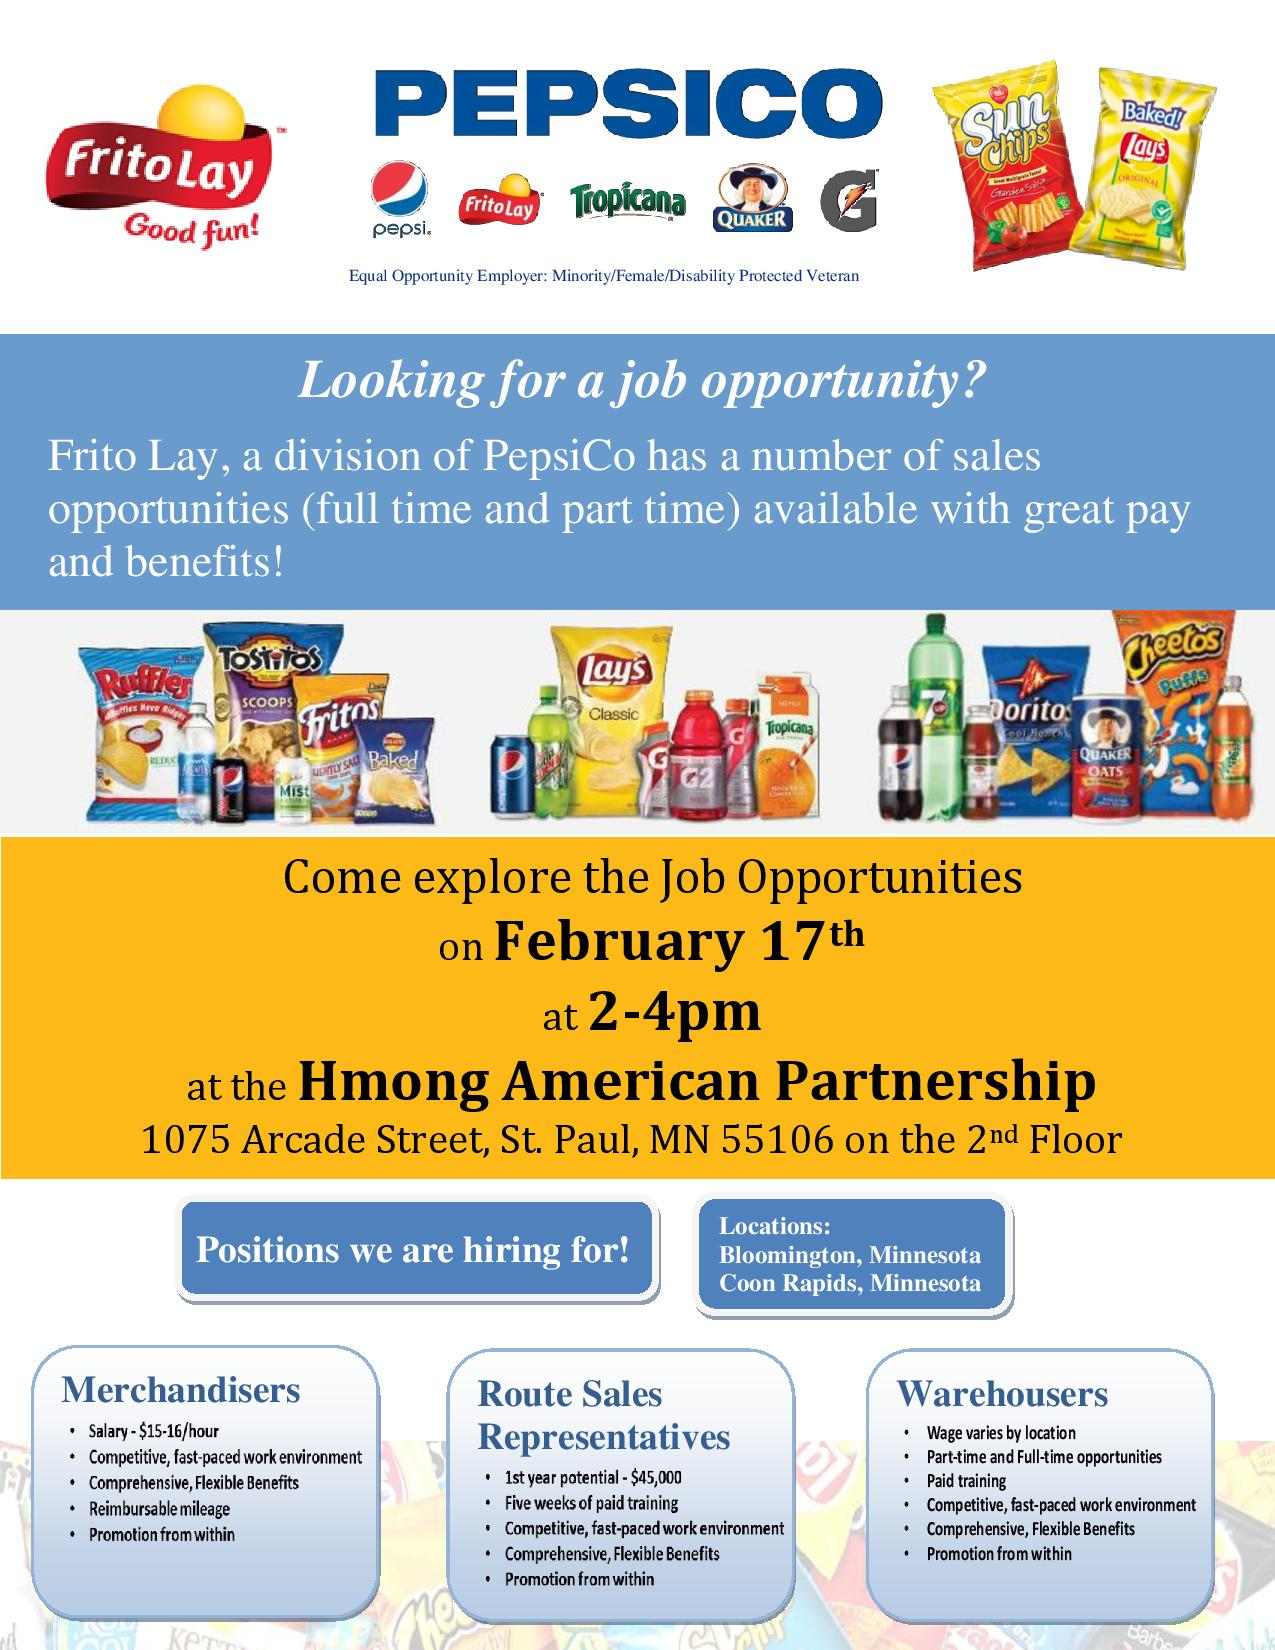 FritoLay_Career_Fair_Flyer___Hmong_Partnership-page-001.jpg